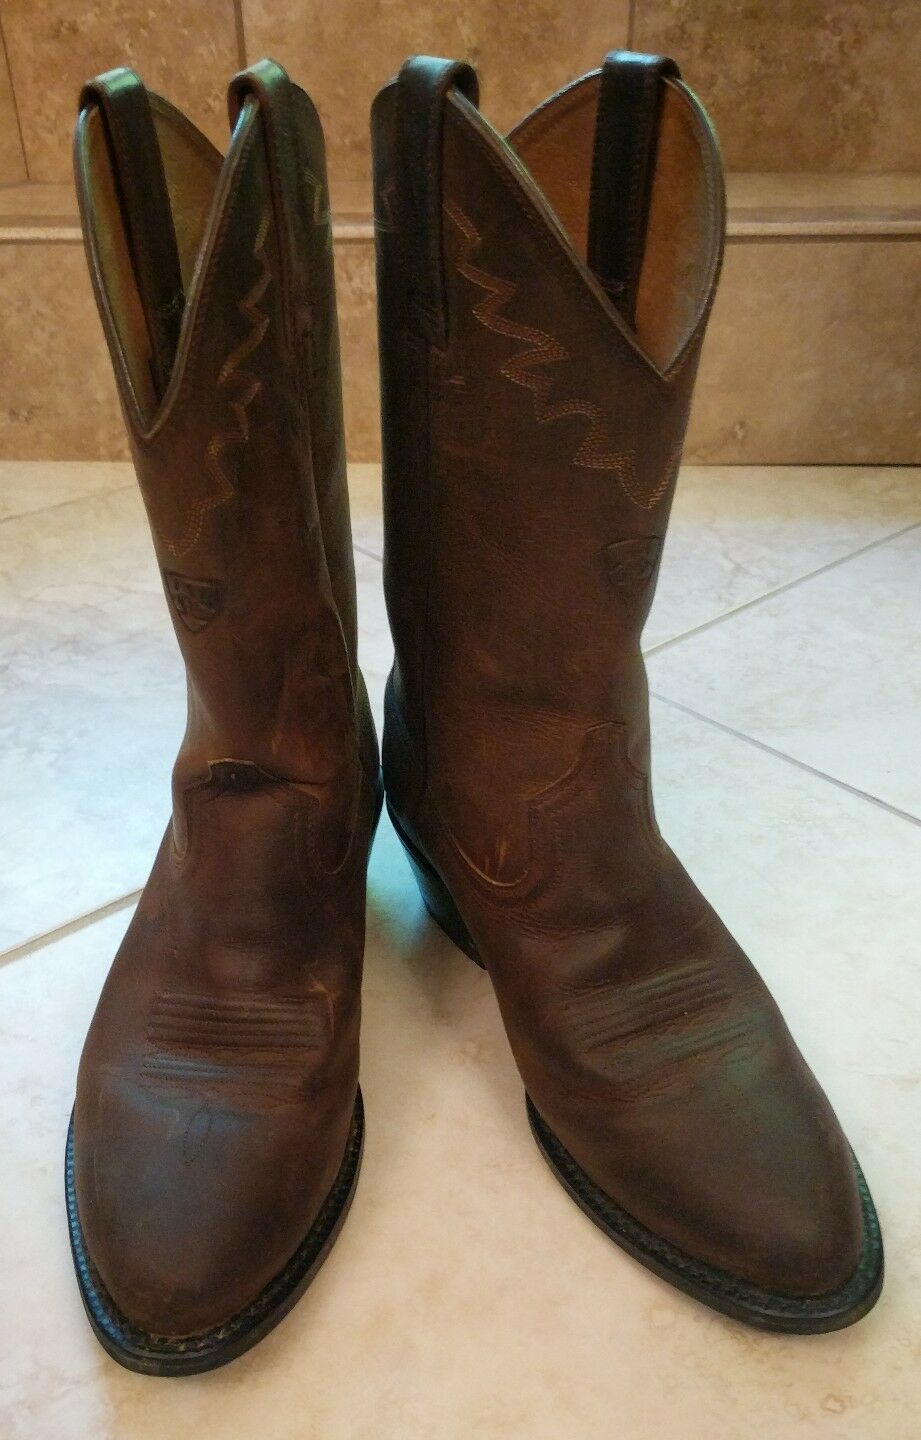 ARIAT SEDONA Brown Leather Western Boots Mens Size 7.5 D Excellent Condition